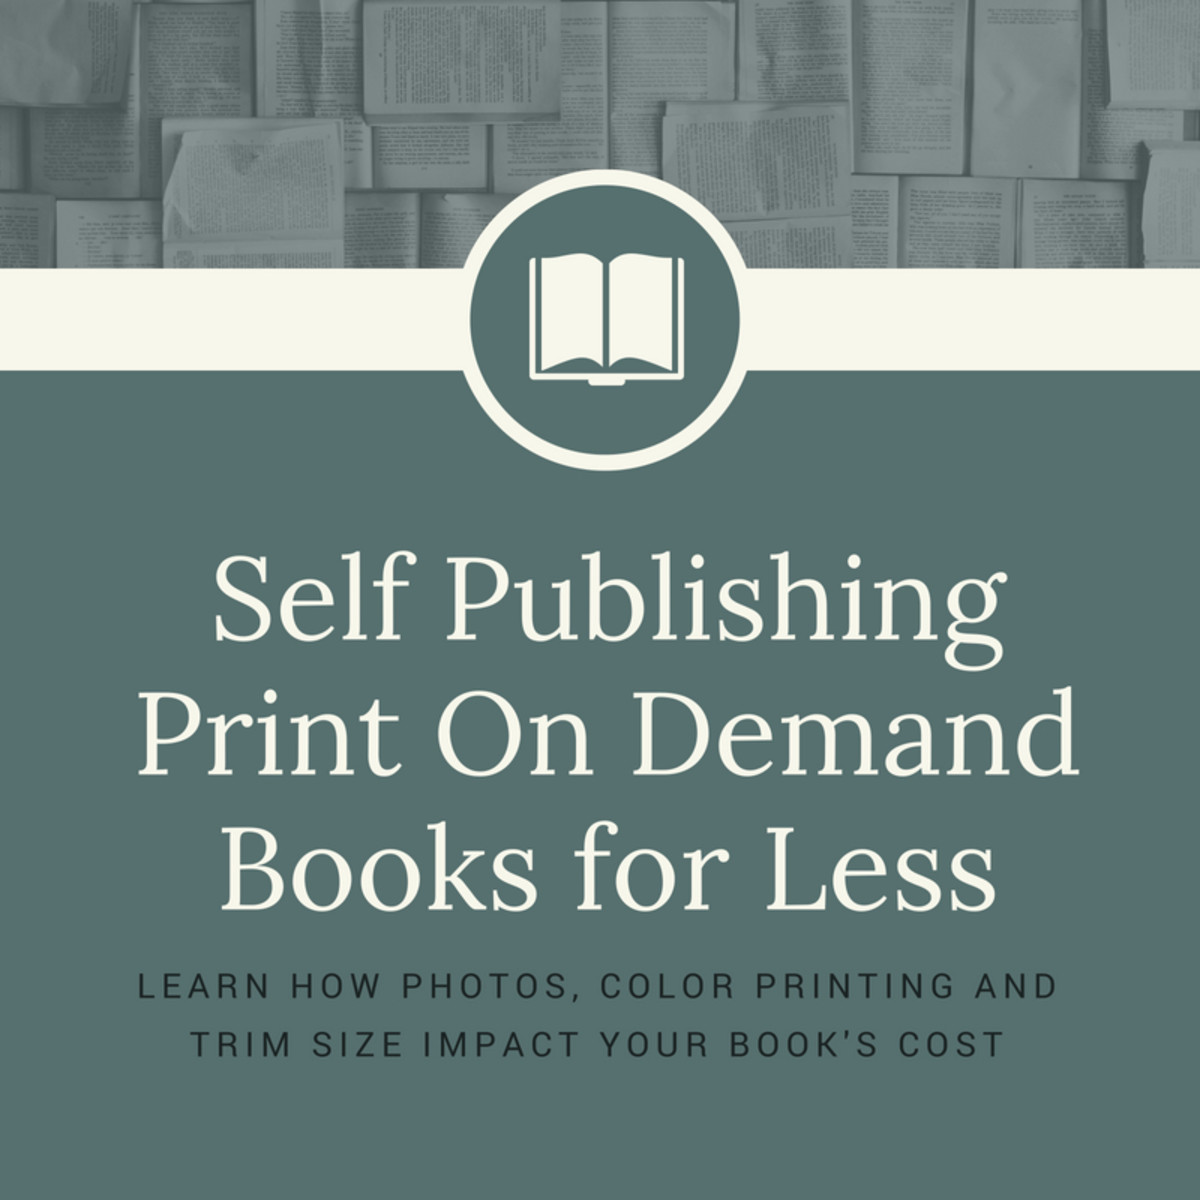 Self Publishing Print on Demand Books for Less